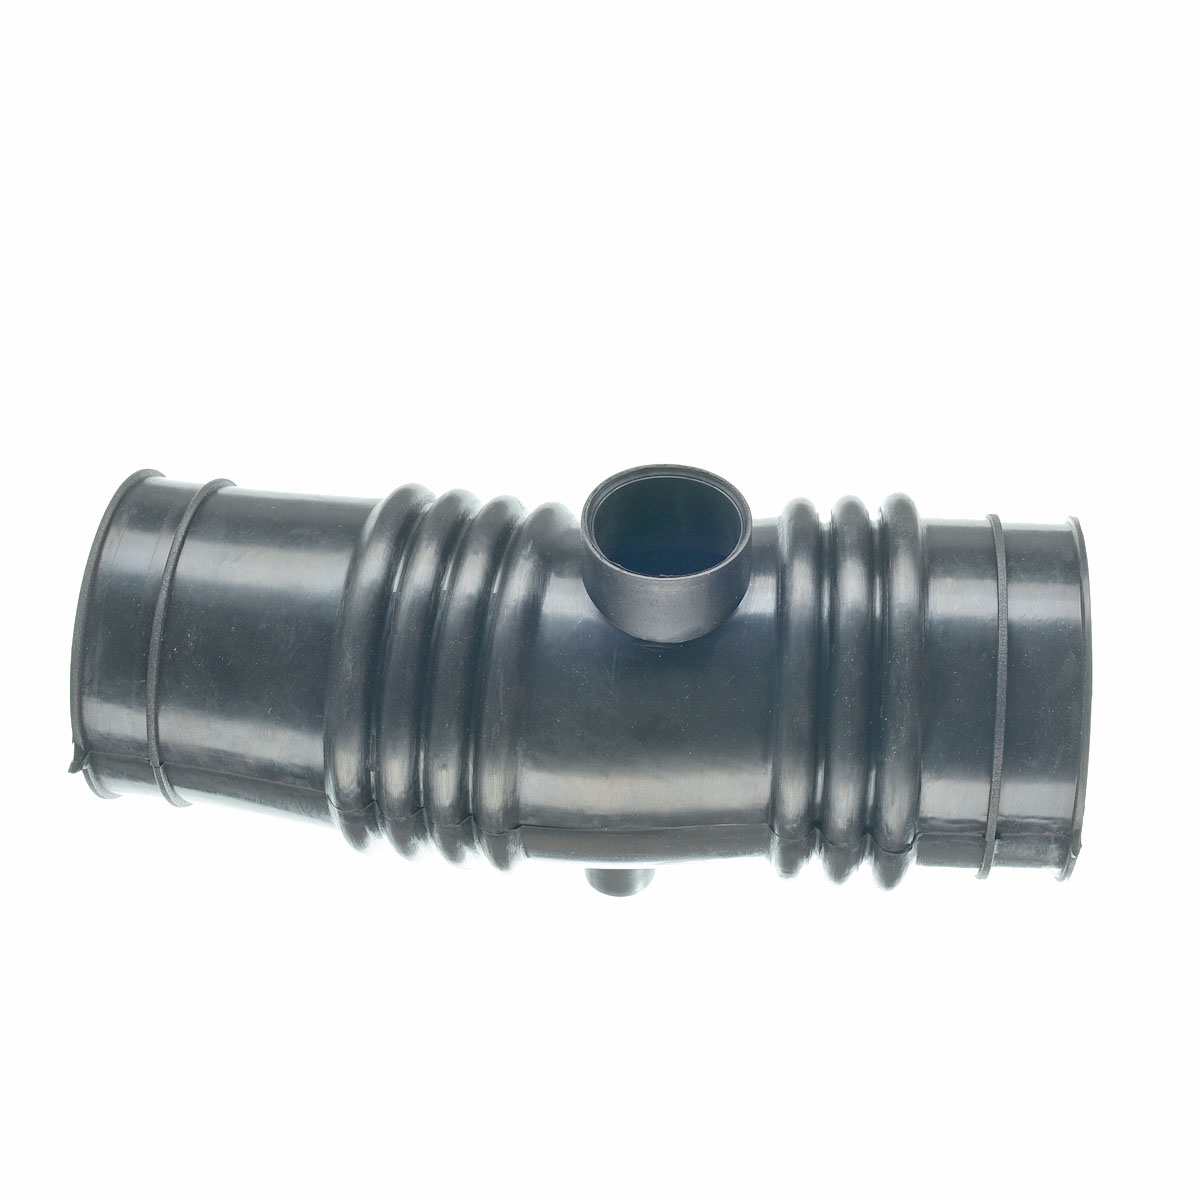 small resolution of air intake hose tube for toyota camry avalon 1994 1996 lexus es300 3 0l 1788120070 in air intakes from automobiles motorcycles on aliexpress com alibaba